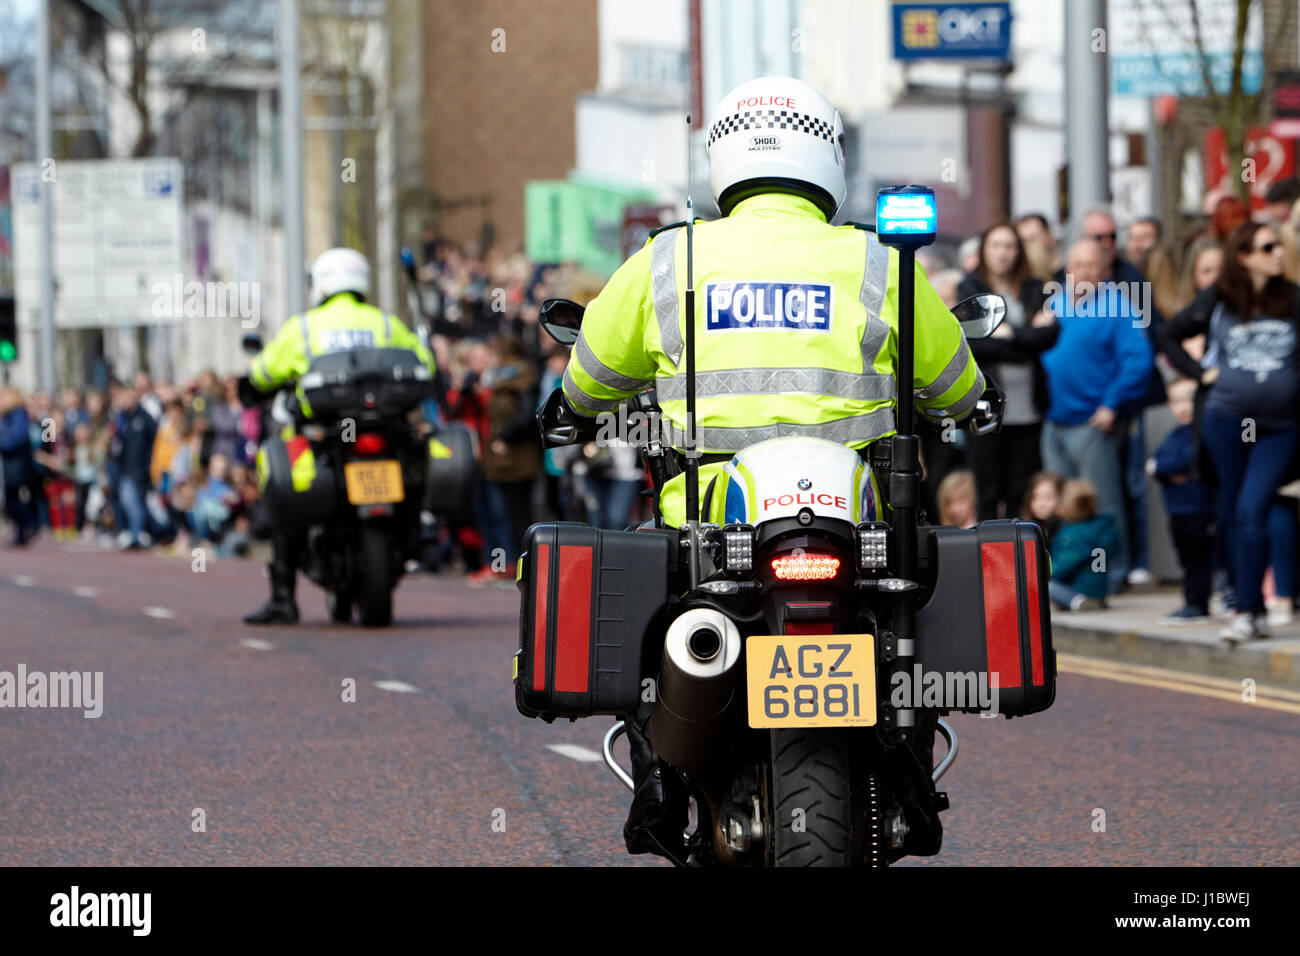 psni police officer traffic police on bmw motorbike during a parade in northern ireland - Stock Image